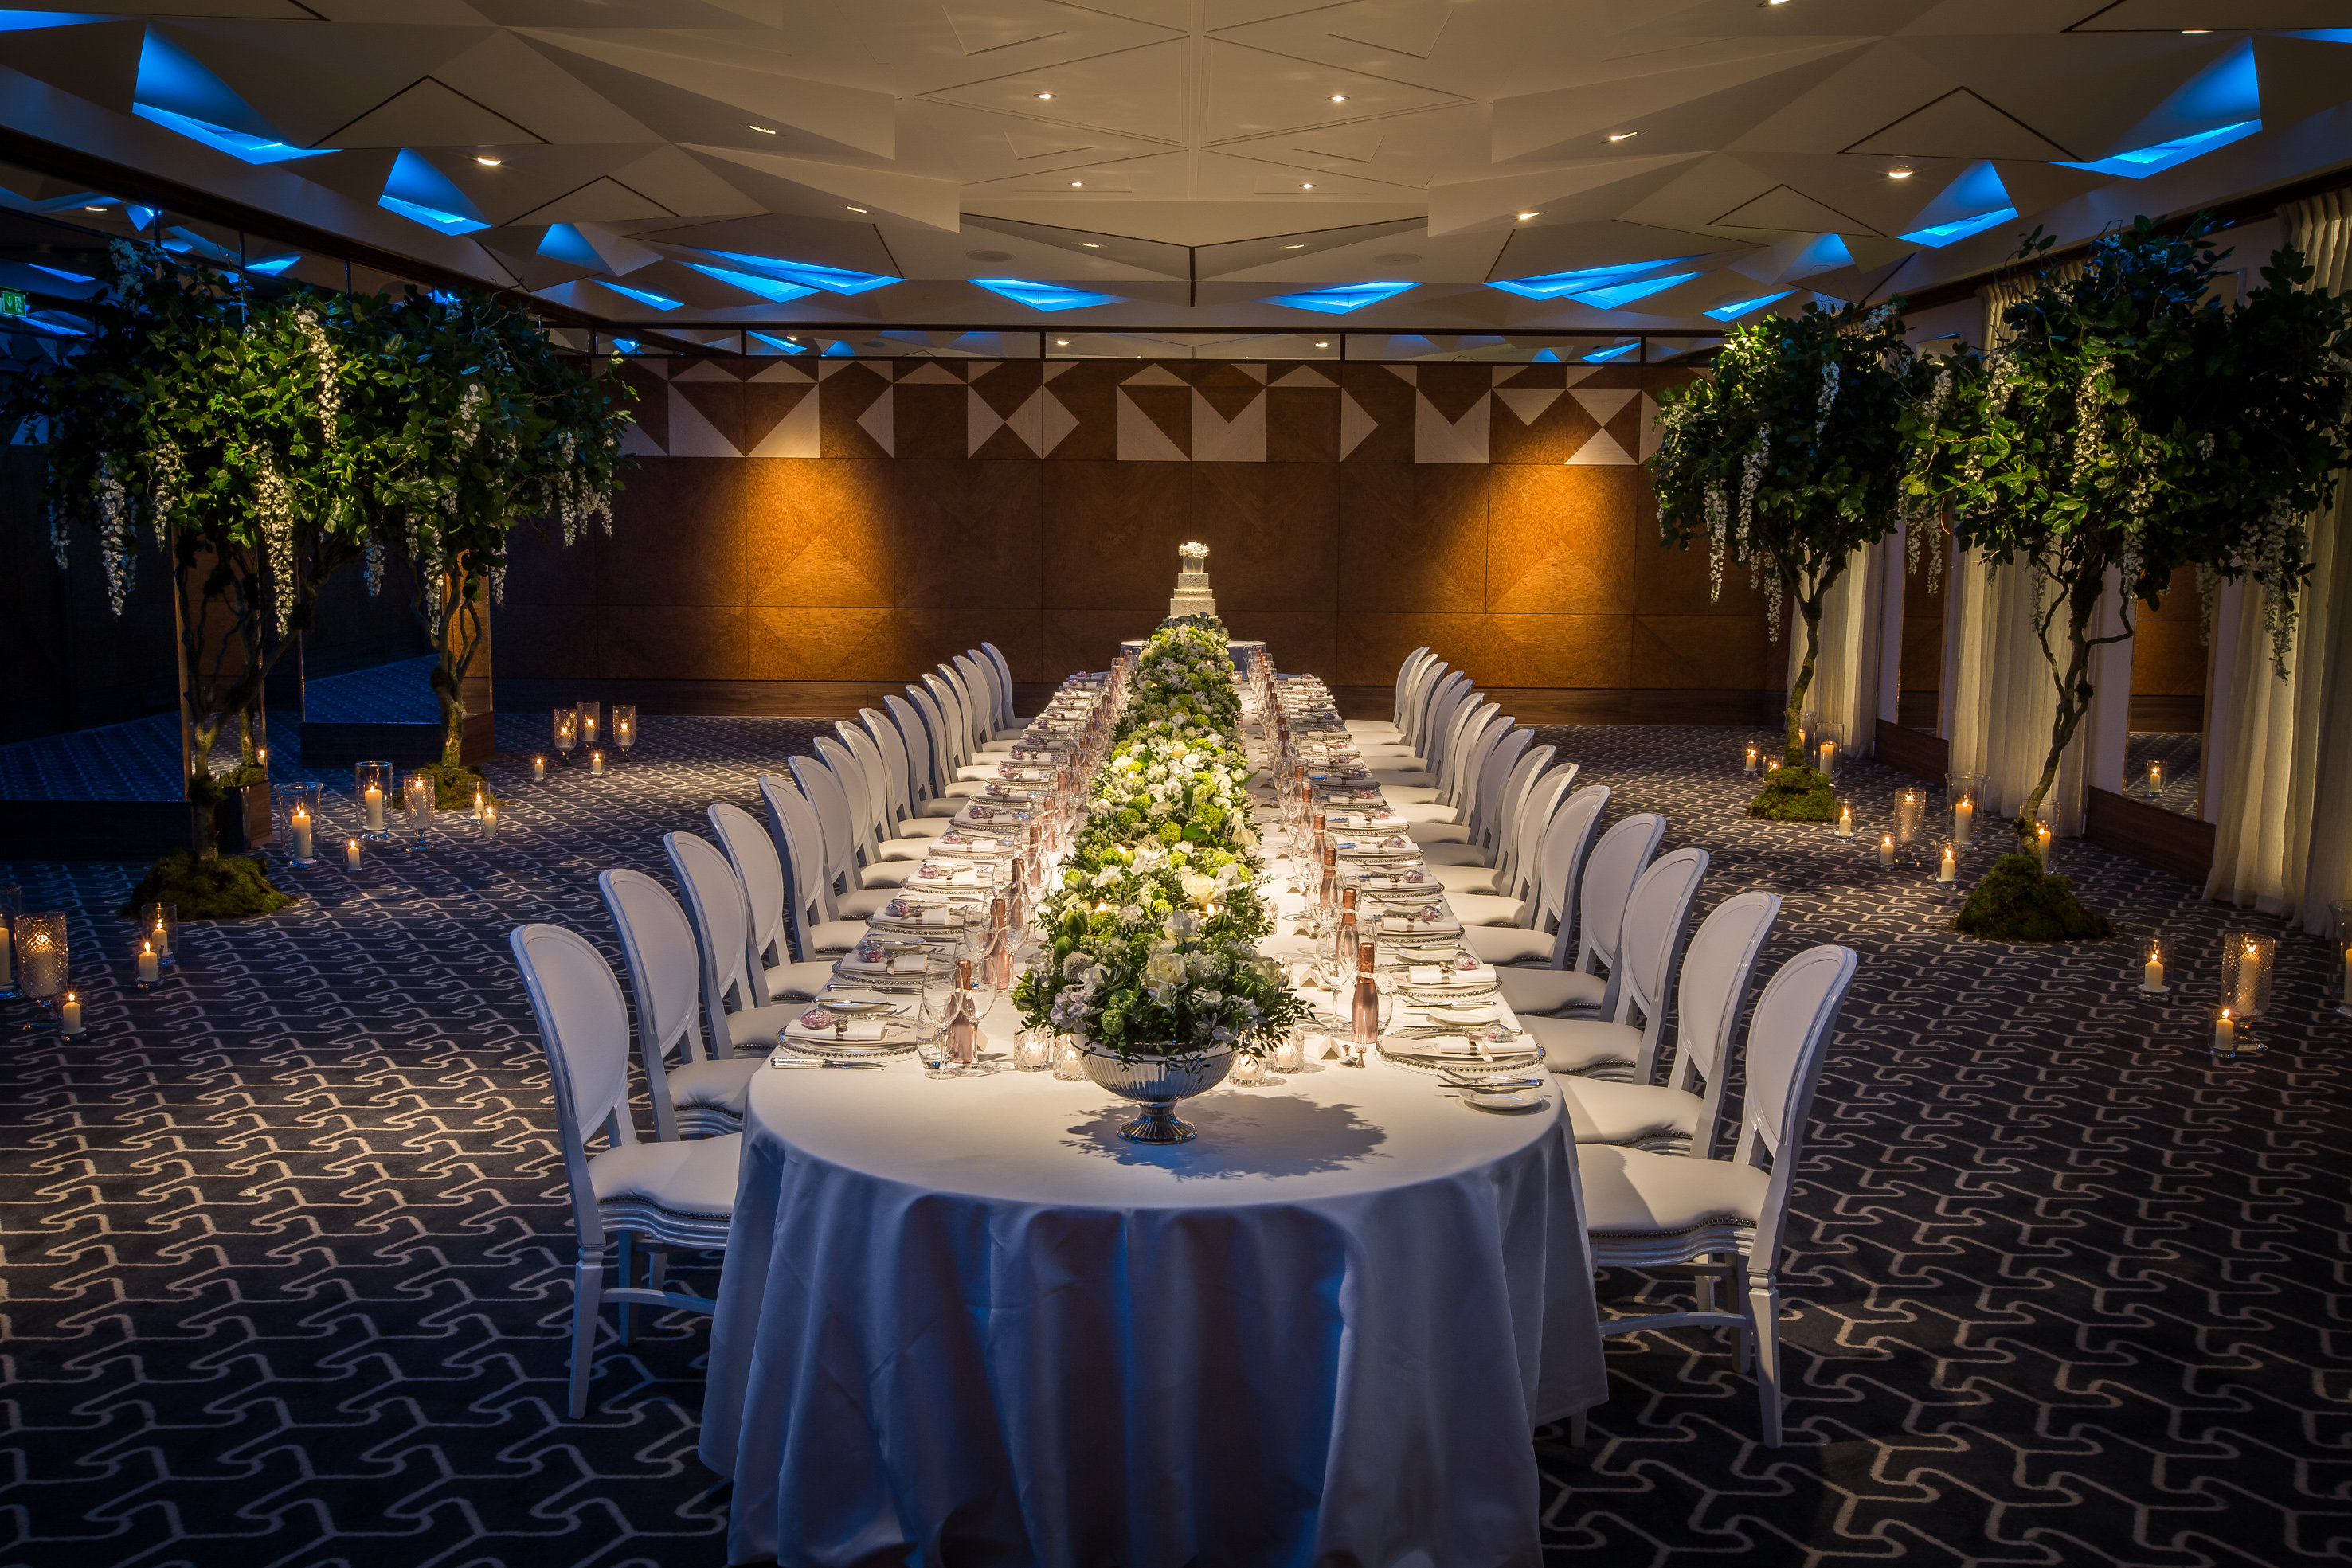 The Berkeley Hotel Ballroom Knightsbridge London Private Event Dining Bouquets Flowers Foliage Florist Candles Larry Walshe